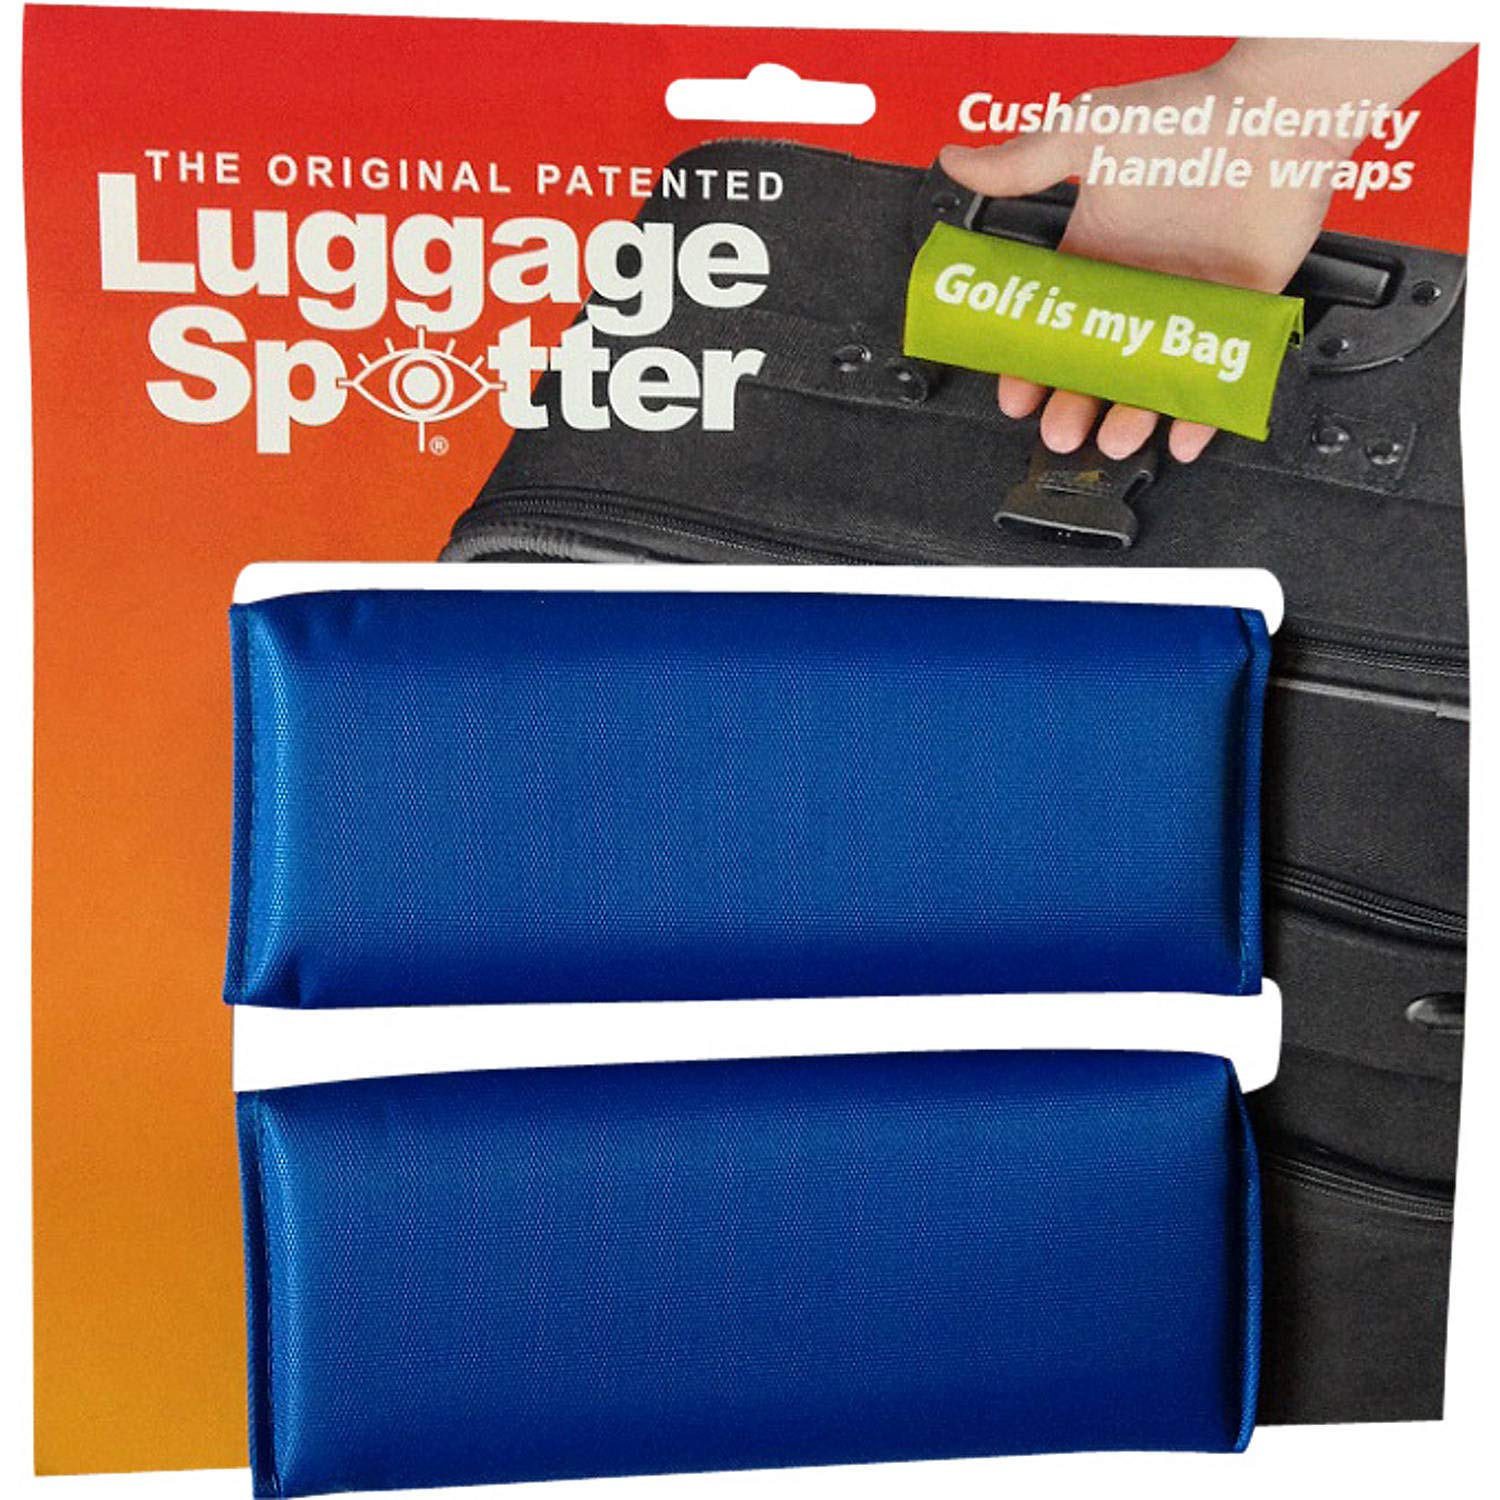 Luggage Spotter BLUE Luggage Locator/Handle Grip/Luggage Grip/Travel Bag Tag/Luggage Handle Wrap (2 PACK) Matrix Source